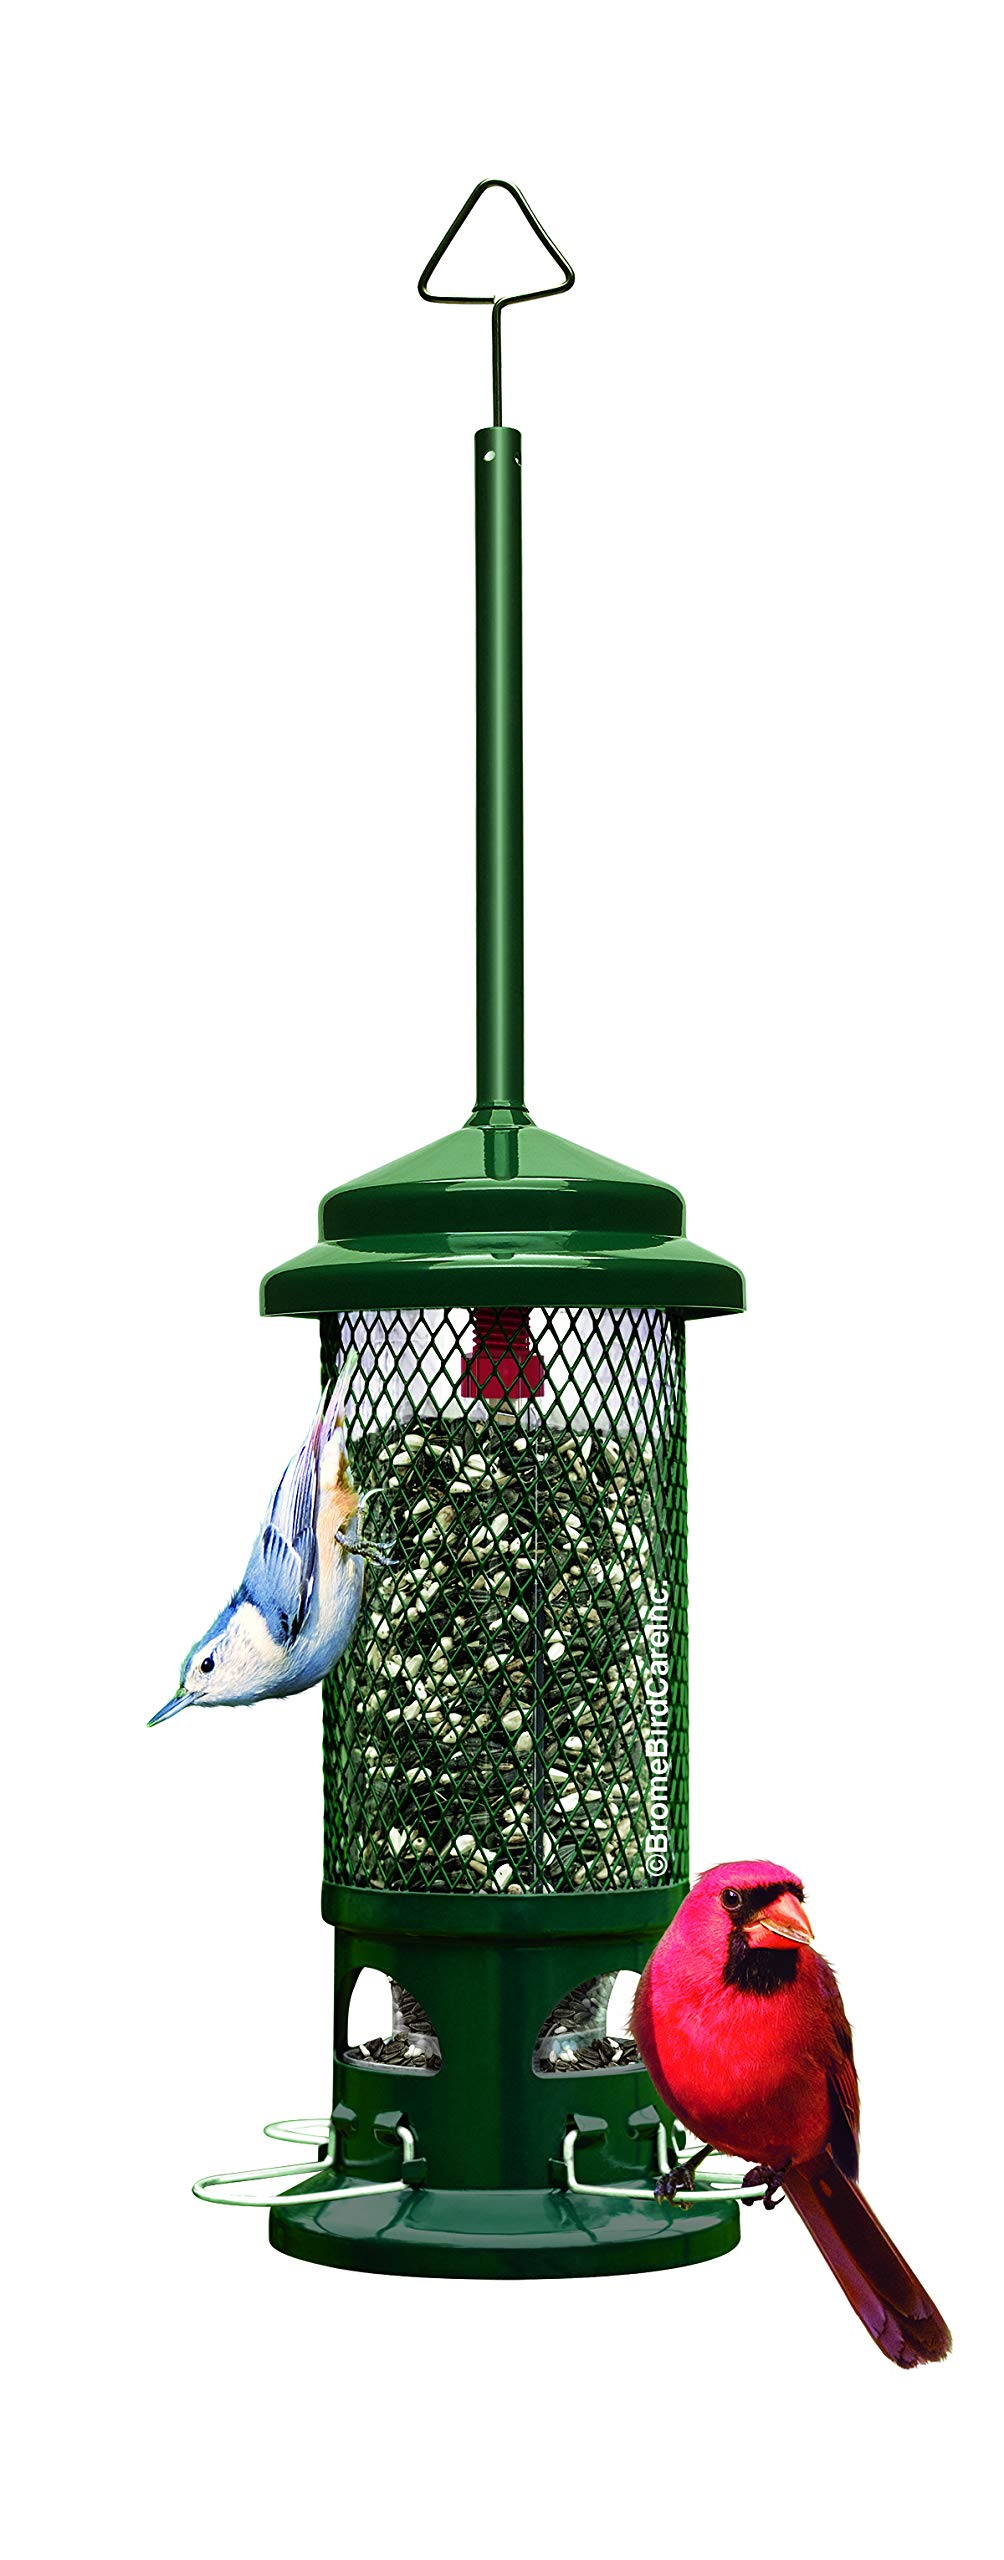 Bird & Wildlife Accessories 100 Year Guarantee Soft And Light Other Bird & Wildlife Accs Big Easy Tubular Seed Feeder Tray